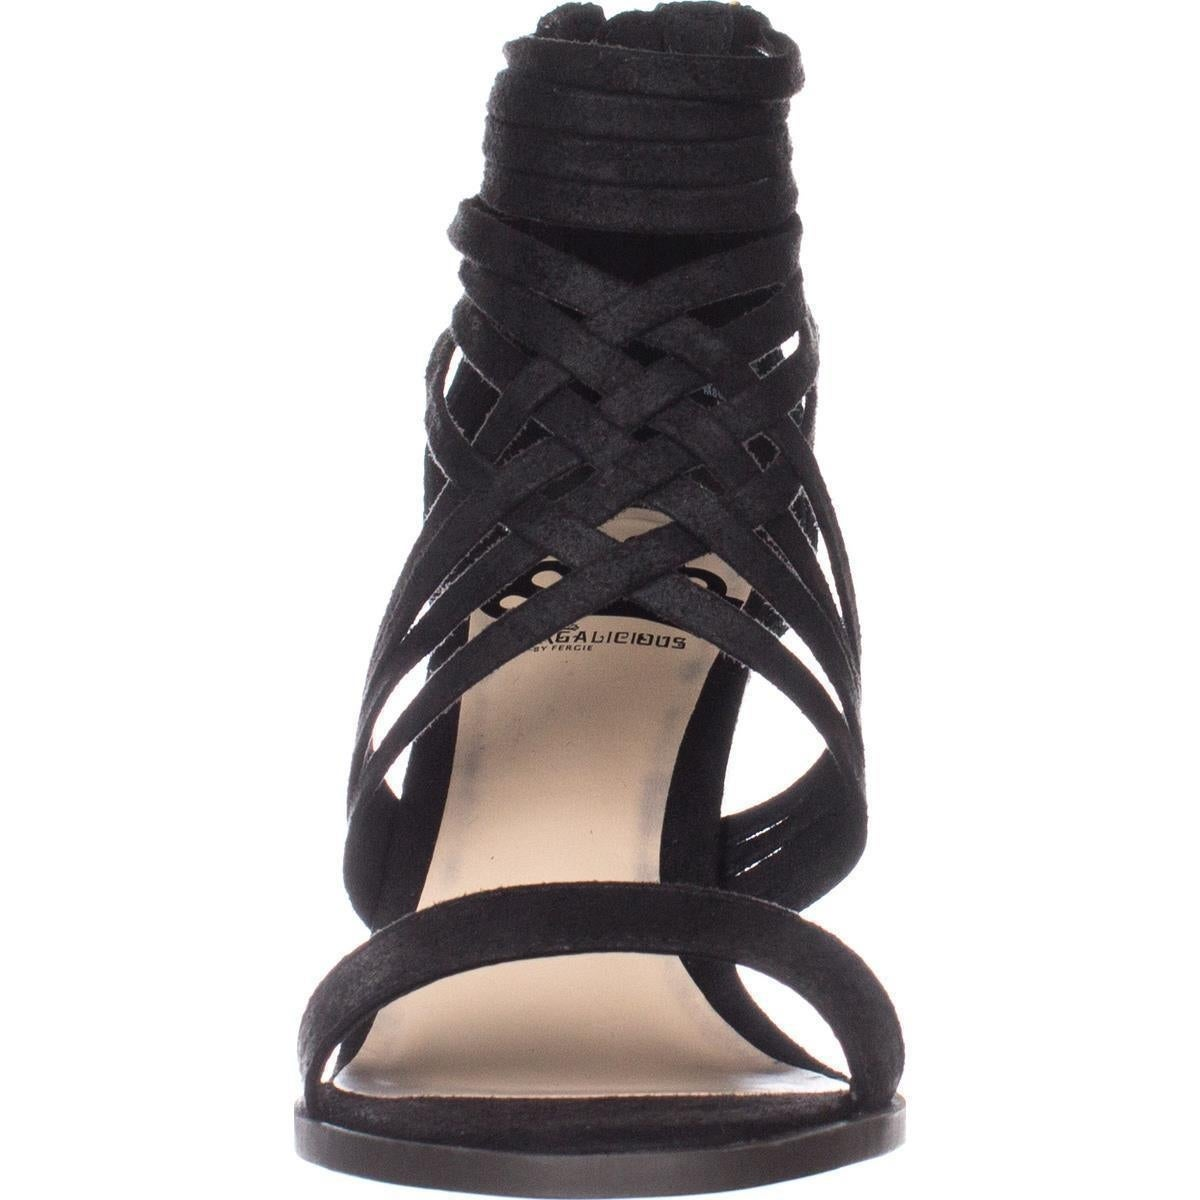 95c372b0b3 Shop Fergalicious Hunter Strappy Wedge Sandals, Black - Free Shipping On  Orders Over $45 - Overstock - 20814058